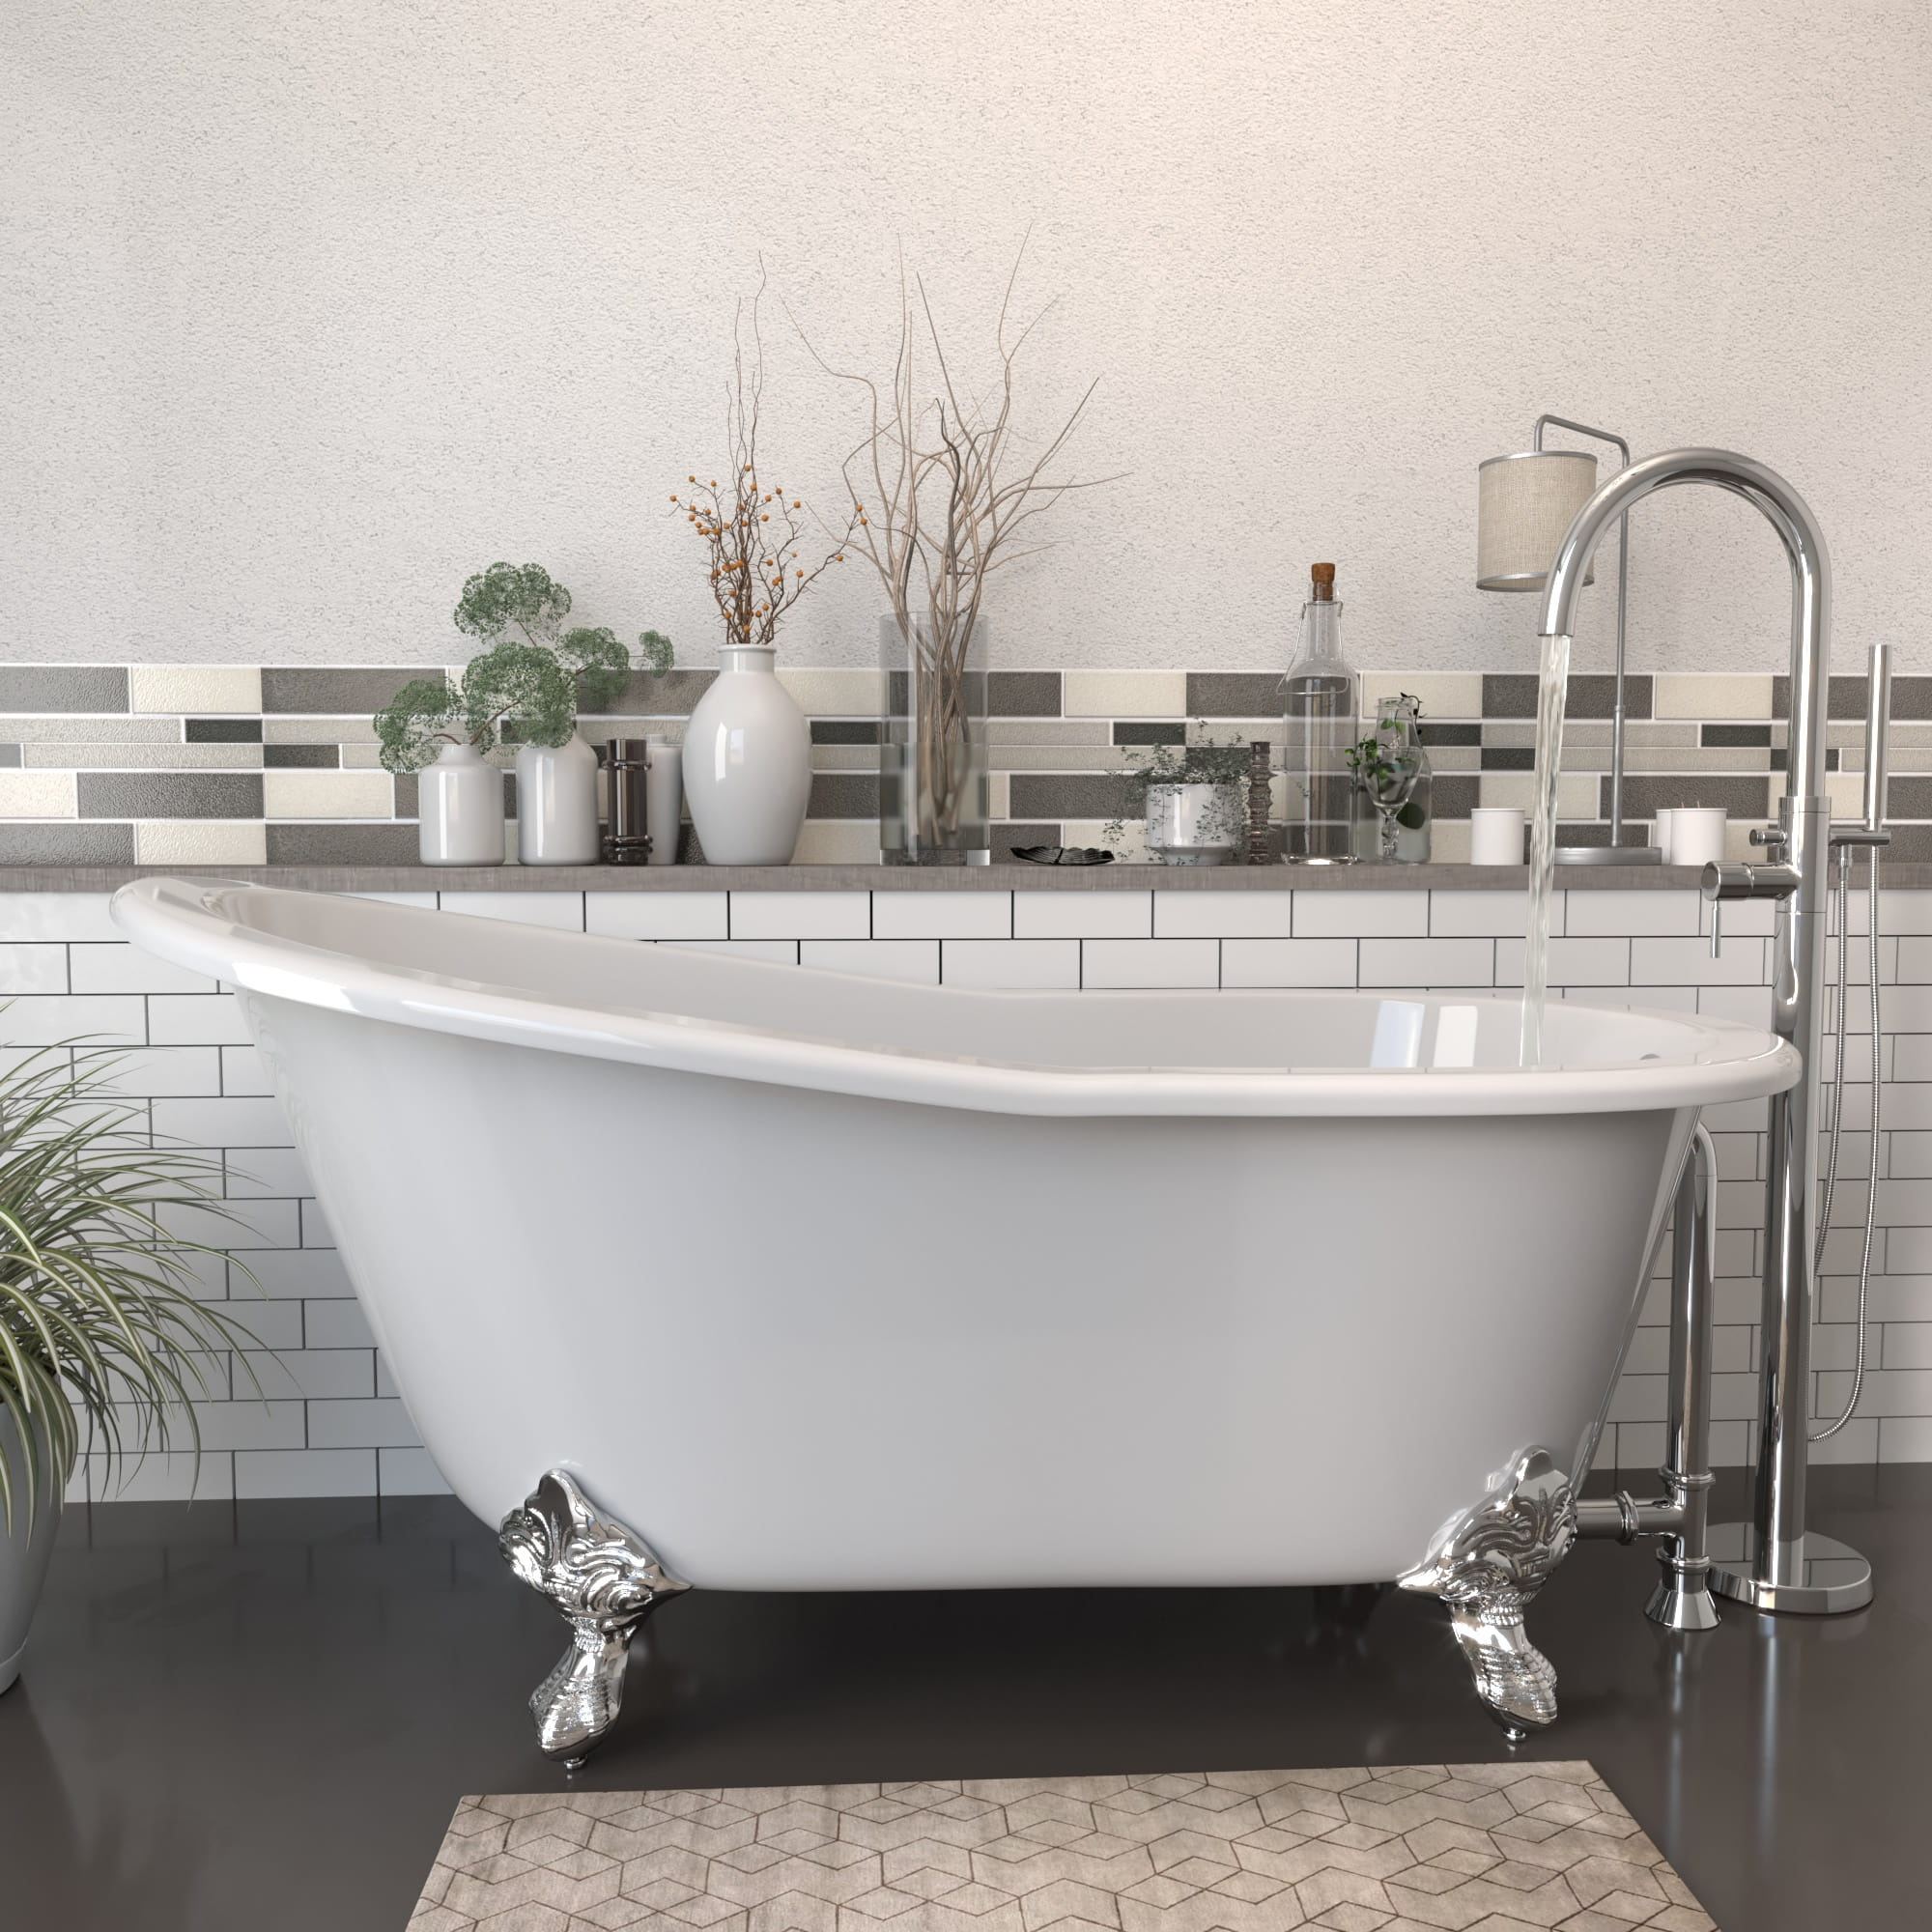 """Cast Iron Slipper Clawfoot Tub 61"""" X 30"""" with no Faucet Drillings and Complete Polished Chrome Modern Freestanding Tub Filler with Hand Held Shower Assembly Plumbing Package"""